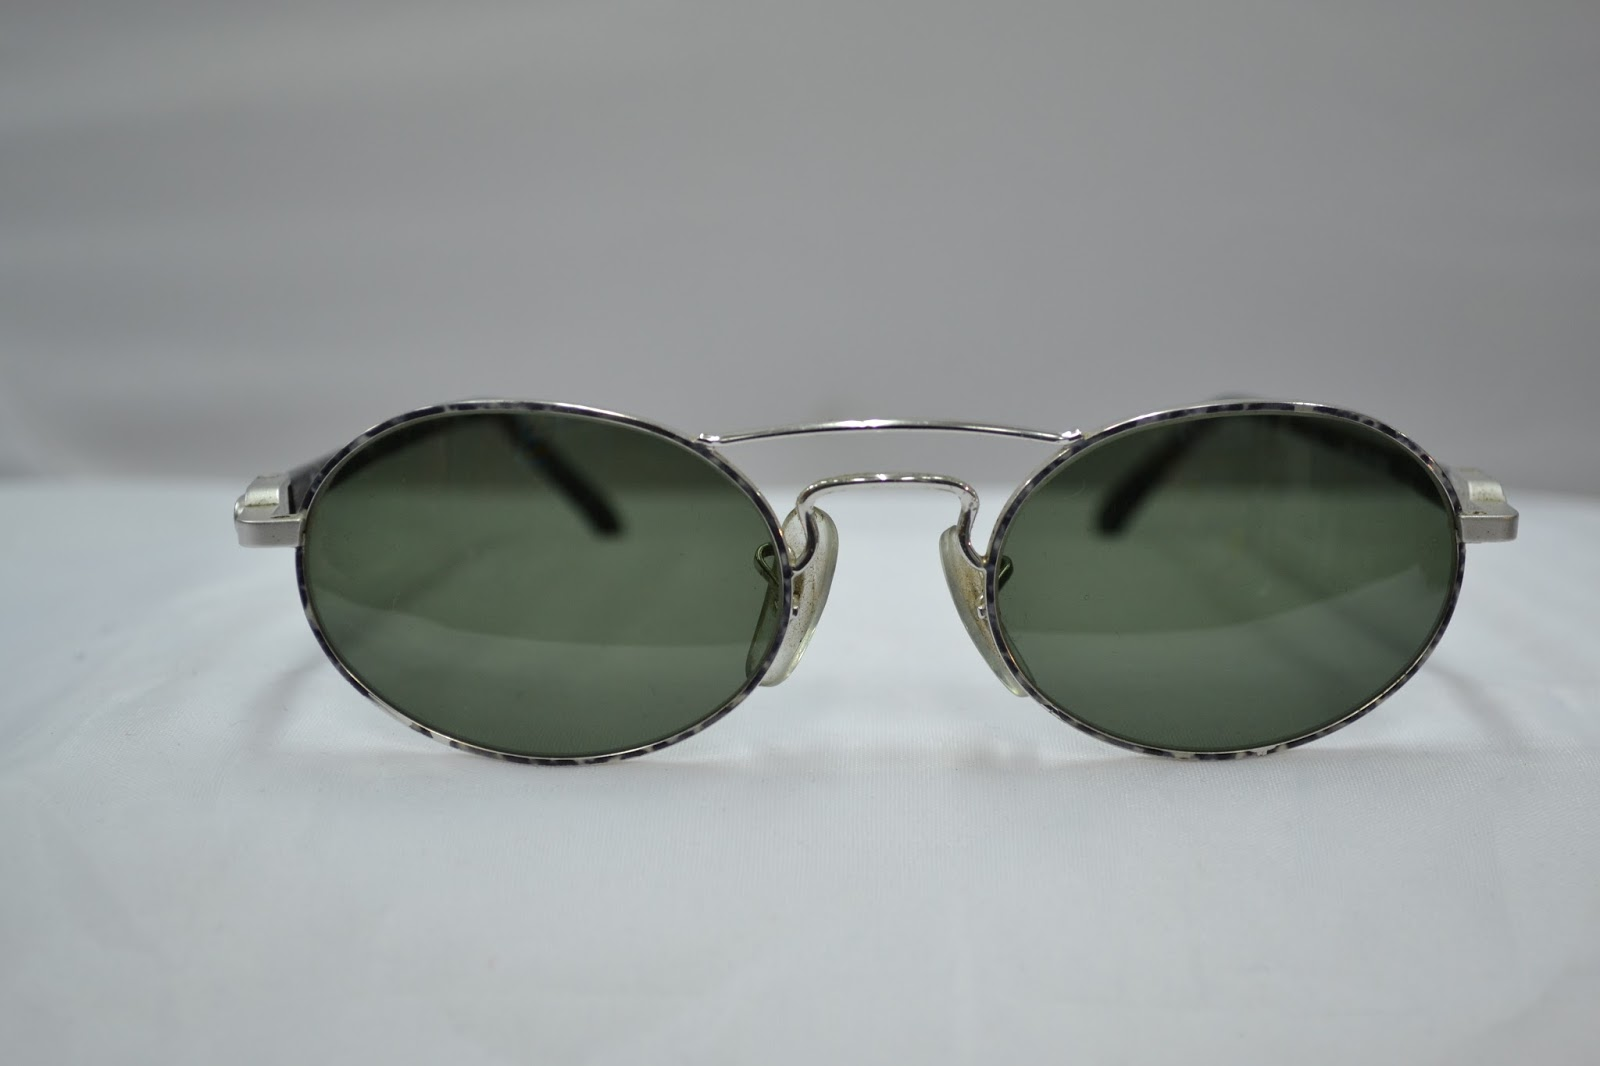 6a1dc87b0eb2 Wellcome you are looking at a lovely Vintage Ray Ban sunglass made by Bausch  and lomb in the USA